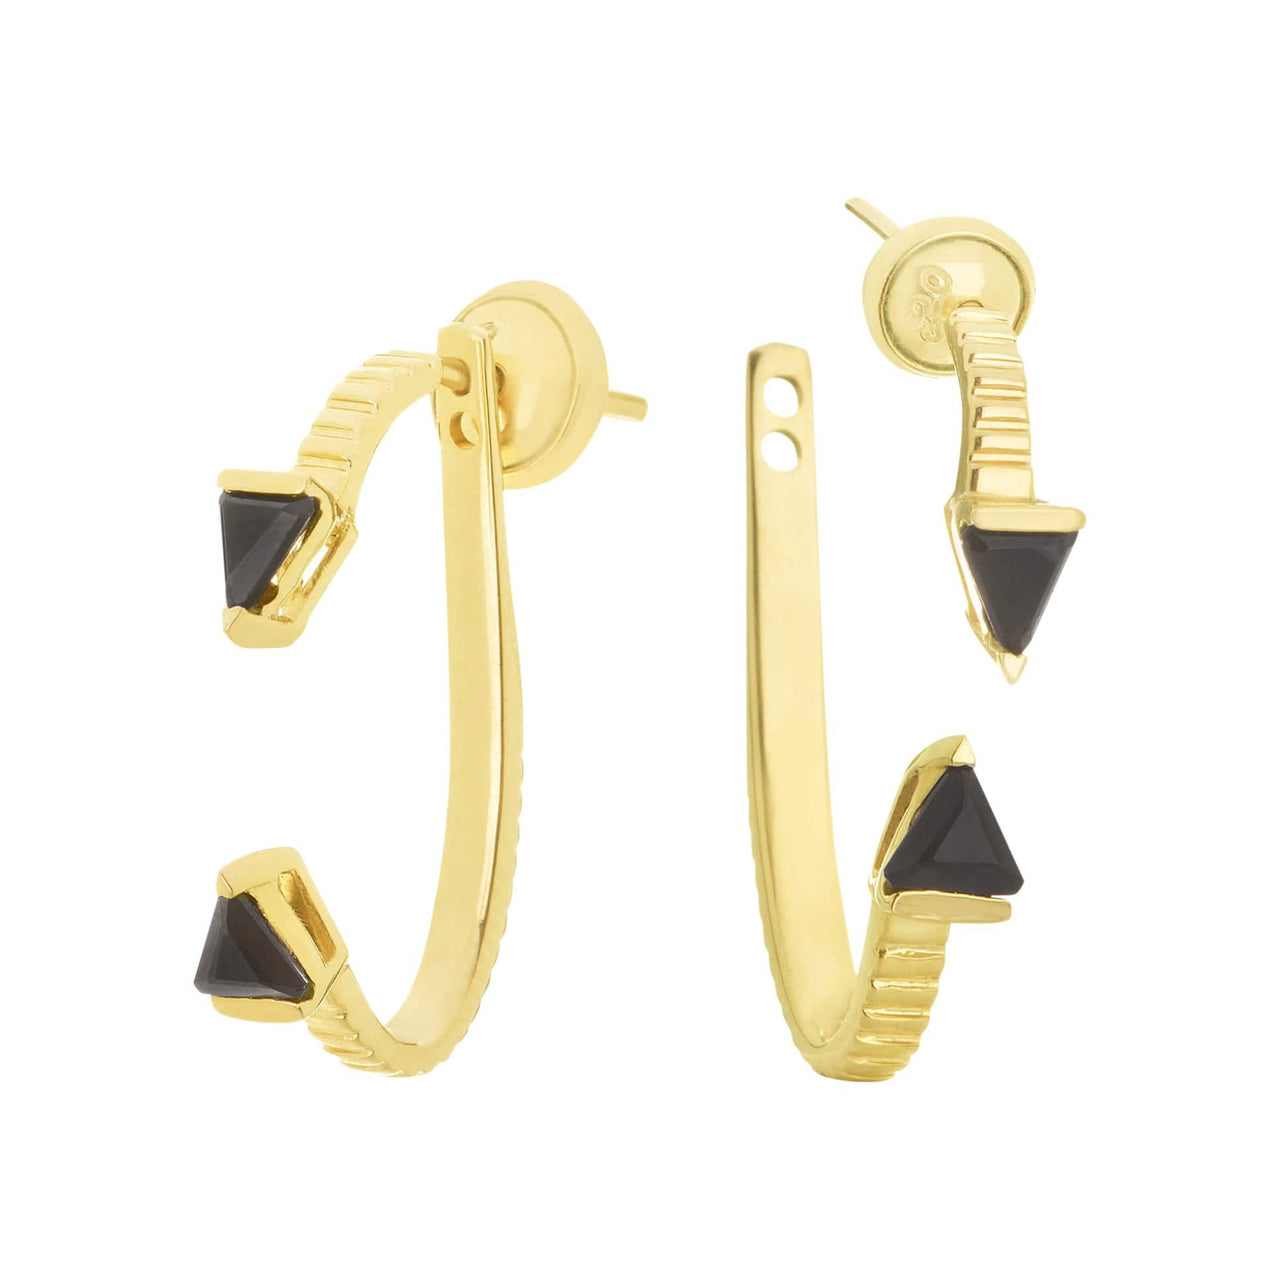 Mel Bandeira Earrings Gold Plated Arrow Earrings with Onyx